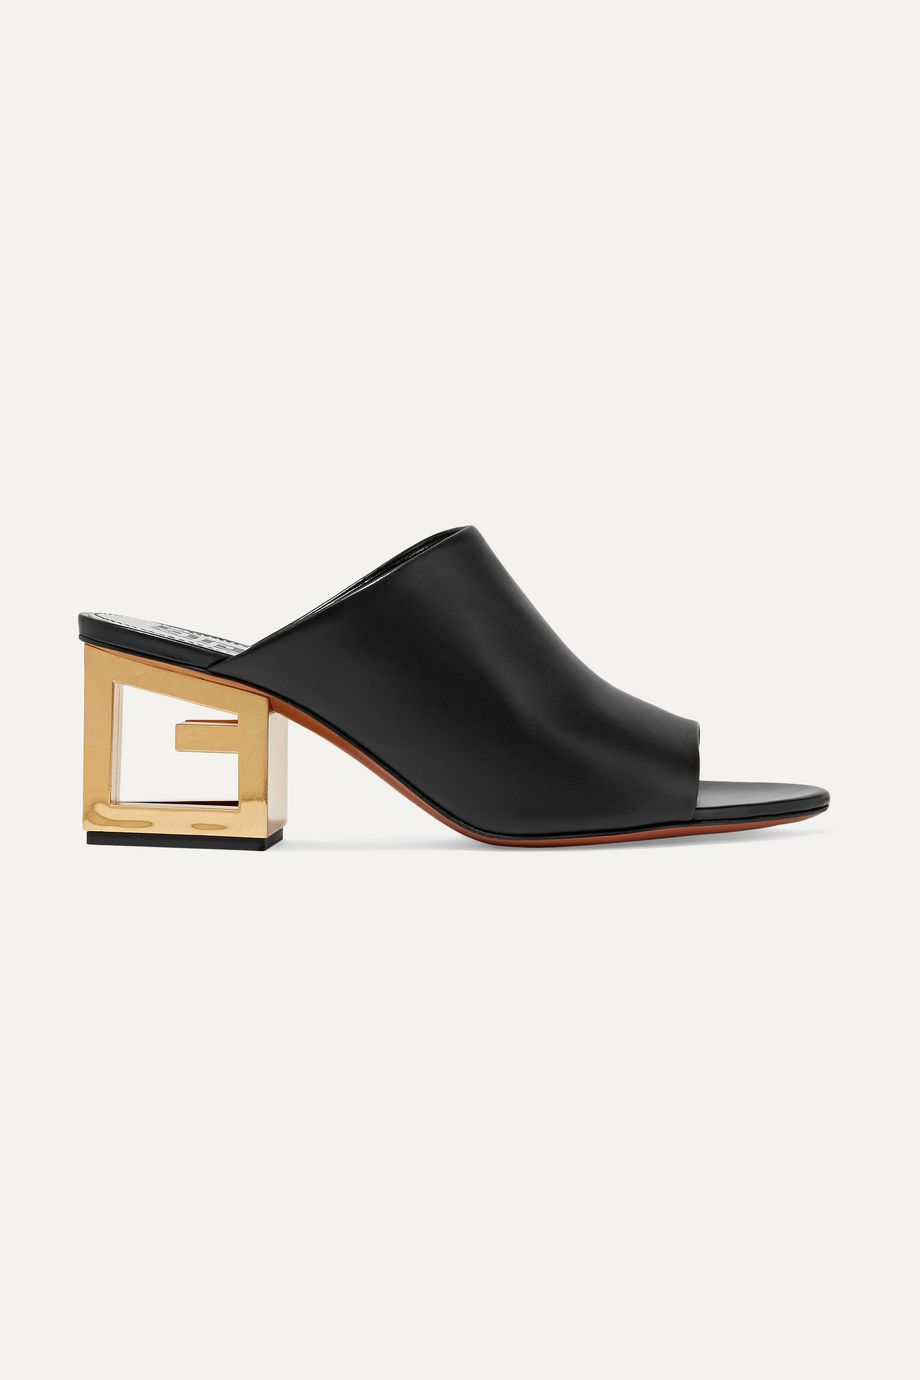 Givenchy Triangle leather mules